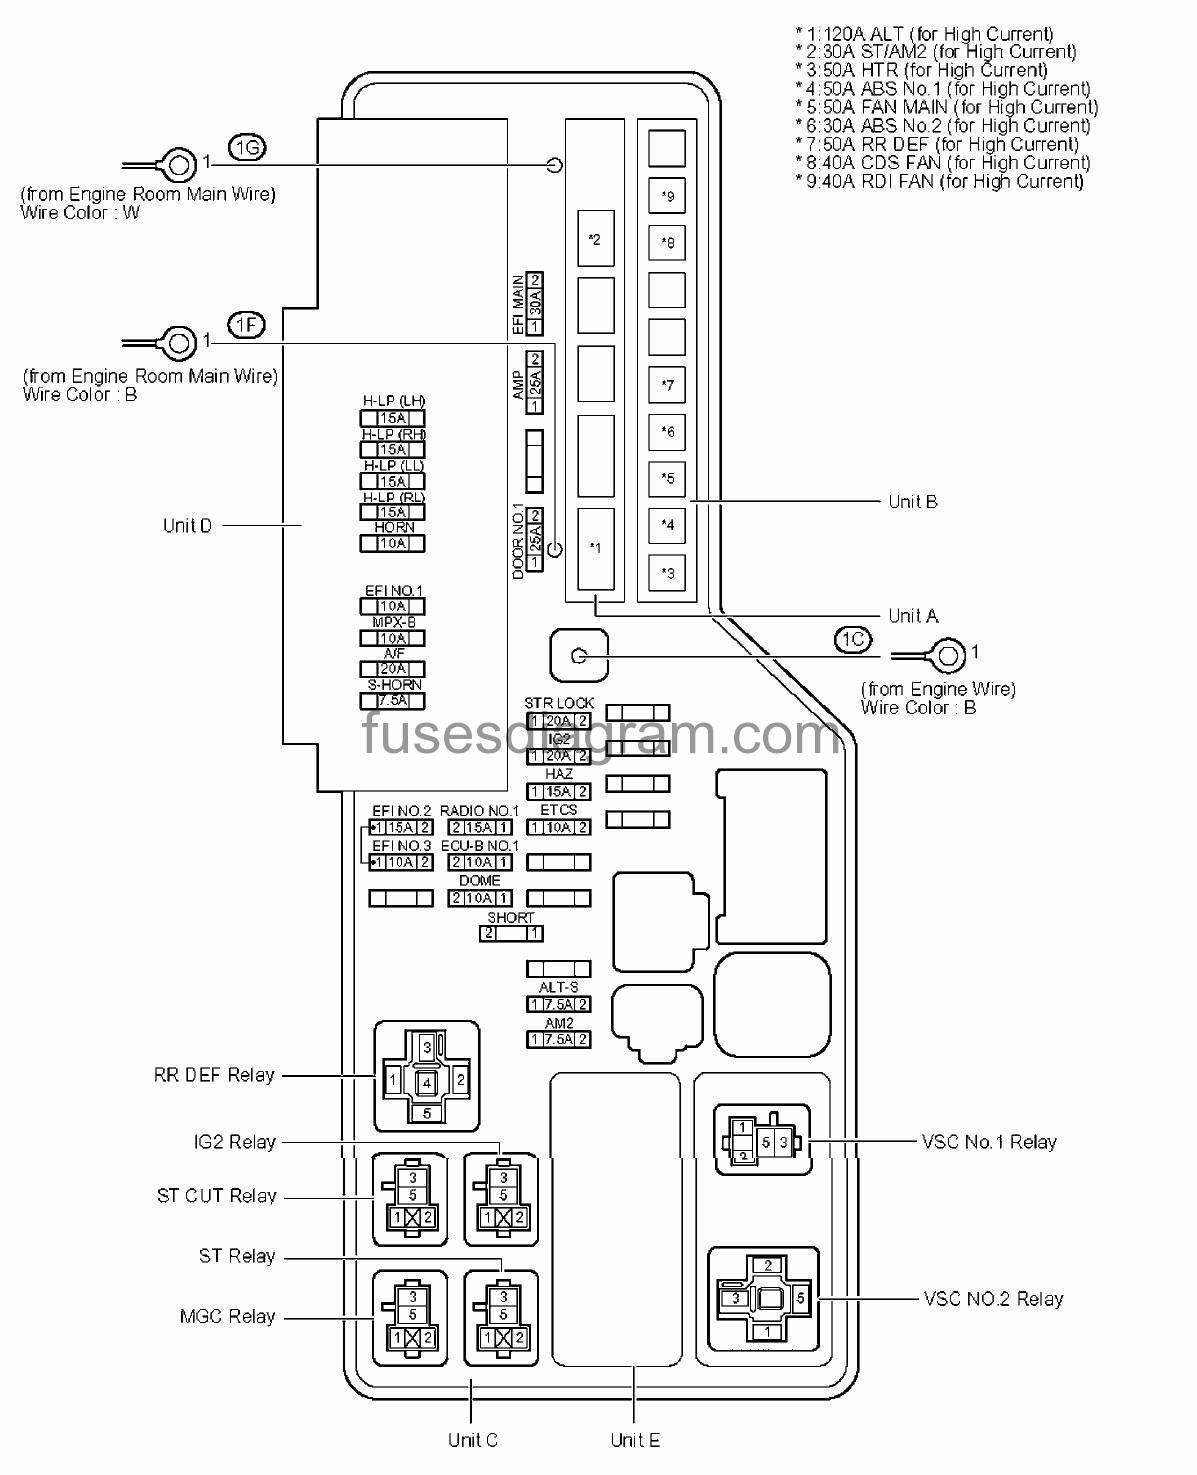 hight resolution of 02 camry fuse box schema wiring diagram schematics toyota fuse box diagram 1998 camry fuse box